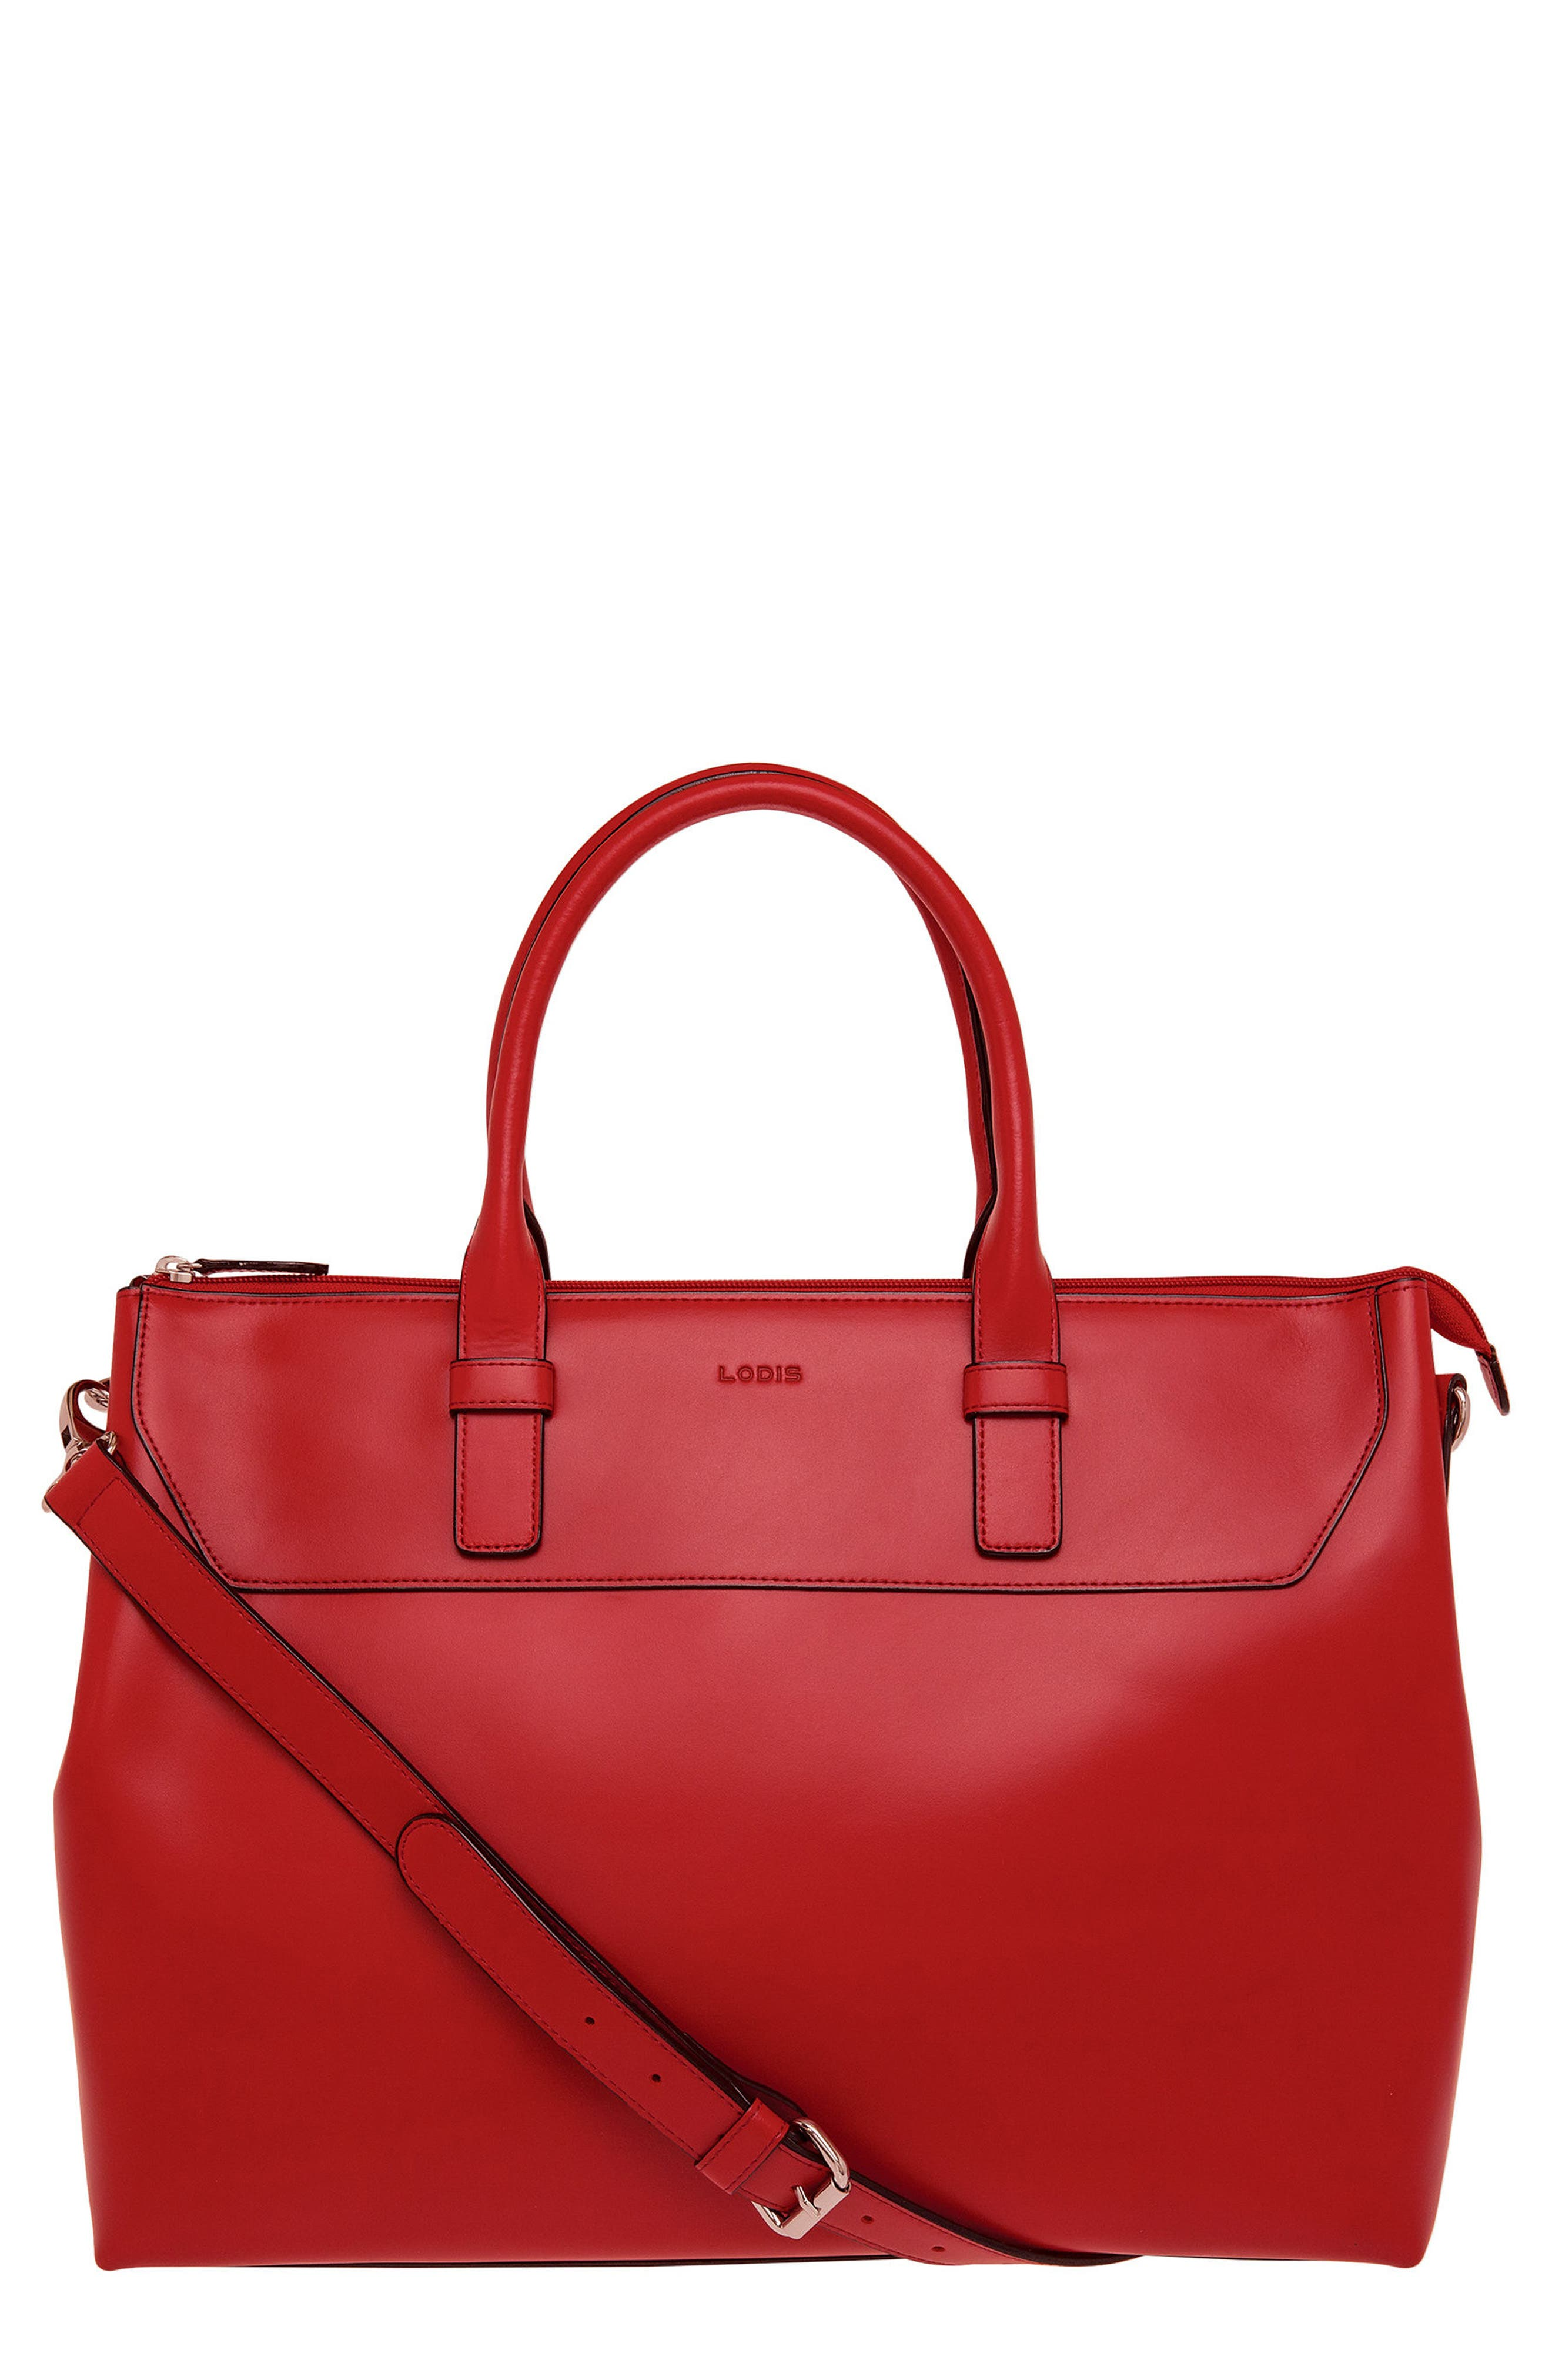 Main Image - Lodis Audrey Wilhelmina Leather Work Satchel